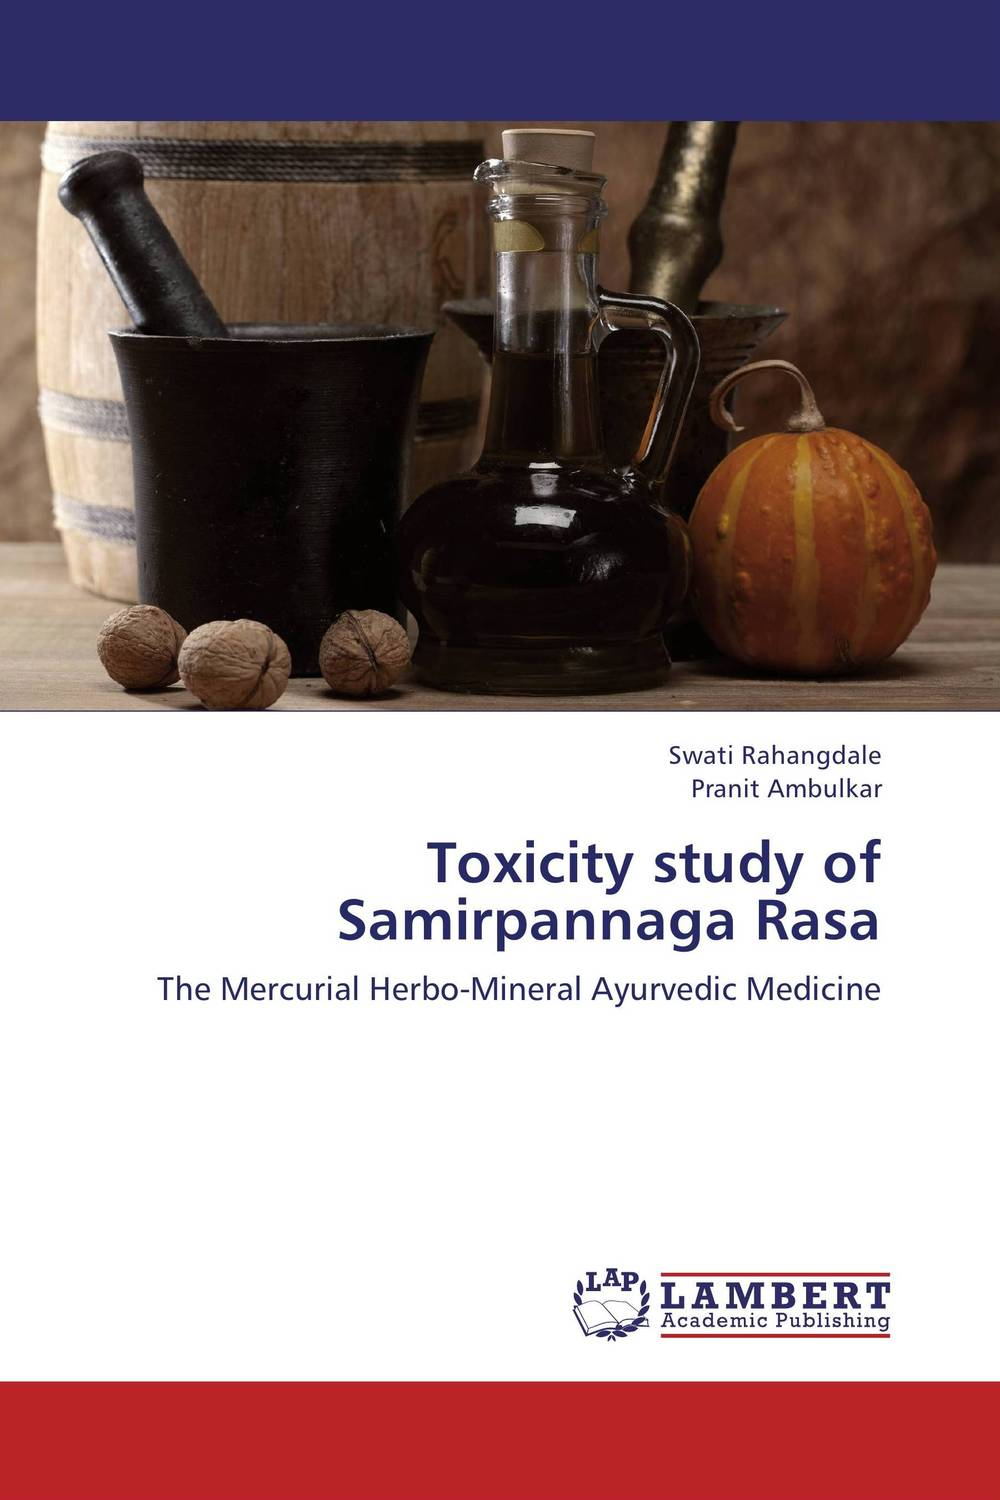 Toxicity study of Samirpannaga Rasa belousov a security features of banknotes and other documents methods of authentication manual денежные билеты бланки ценных бумаг и документов